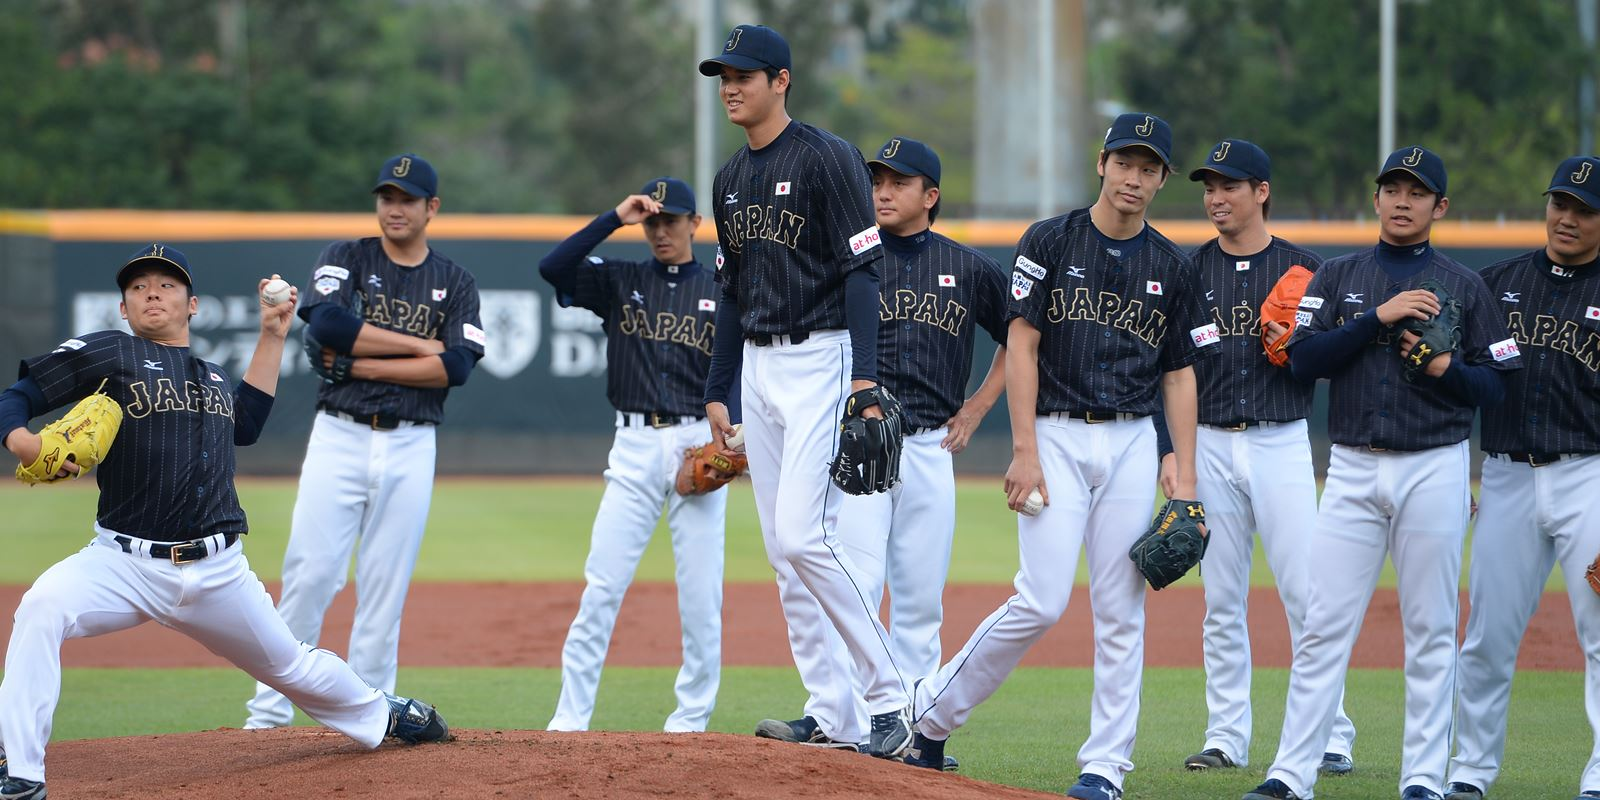 Japan National Baseball Team - Piitchers